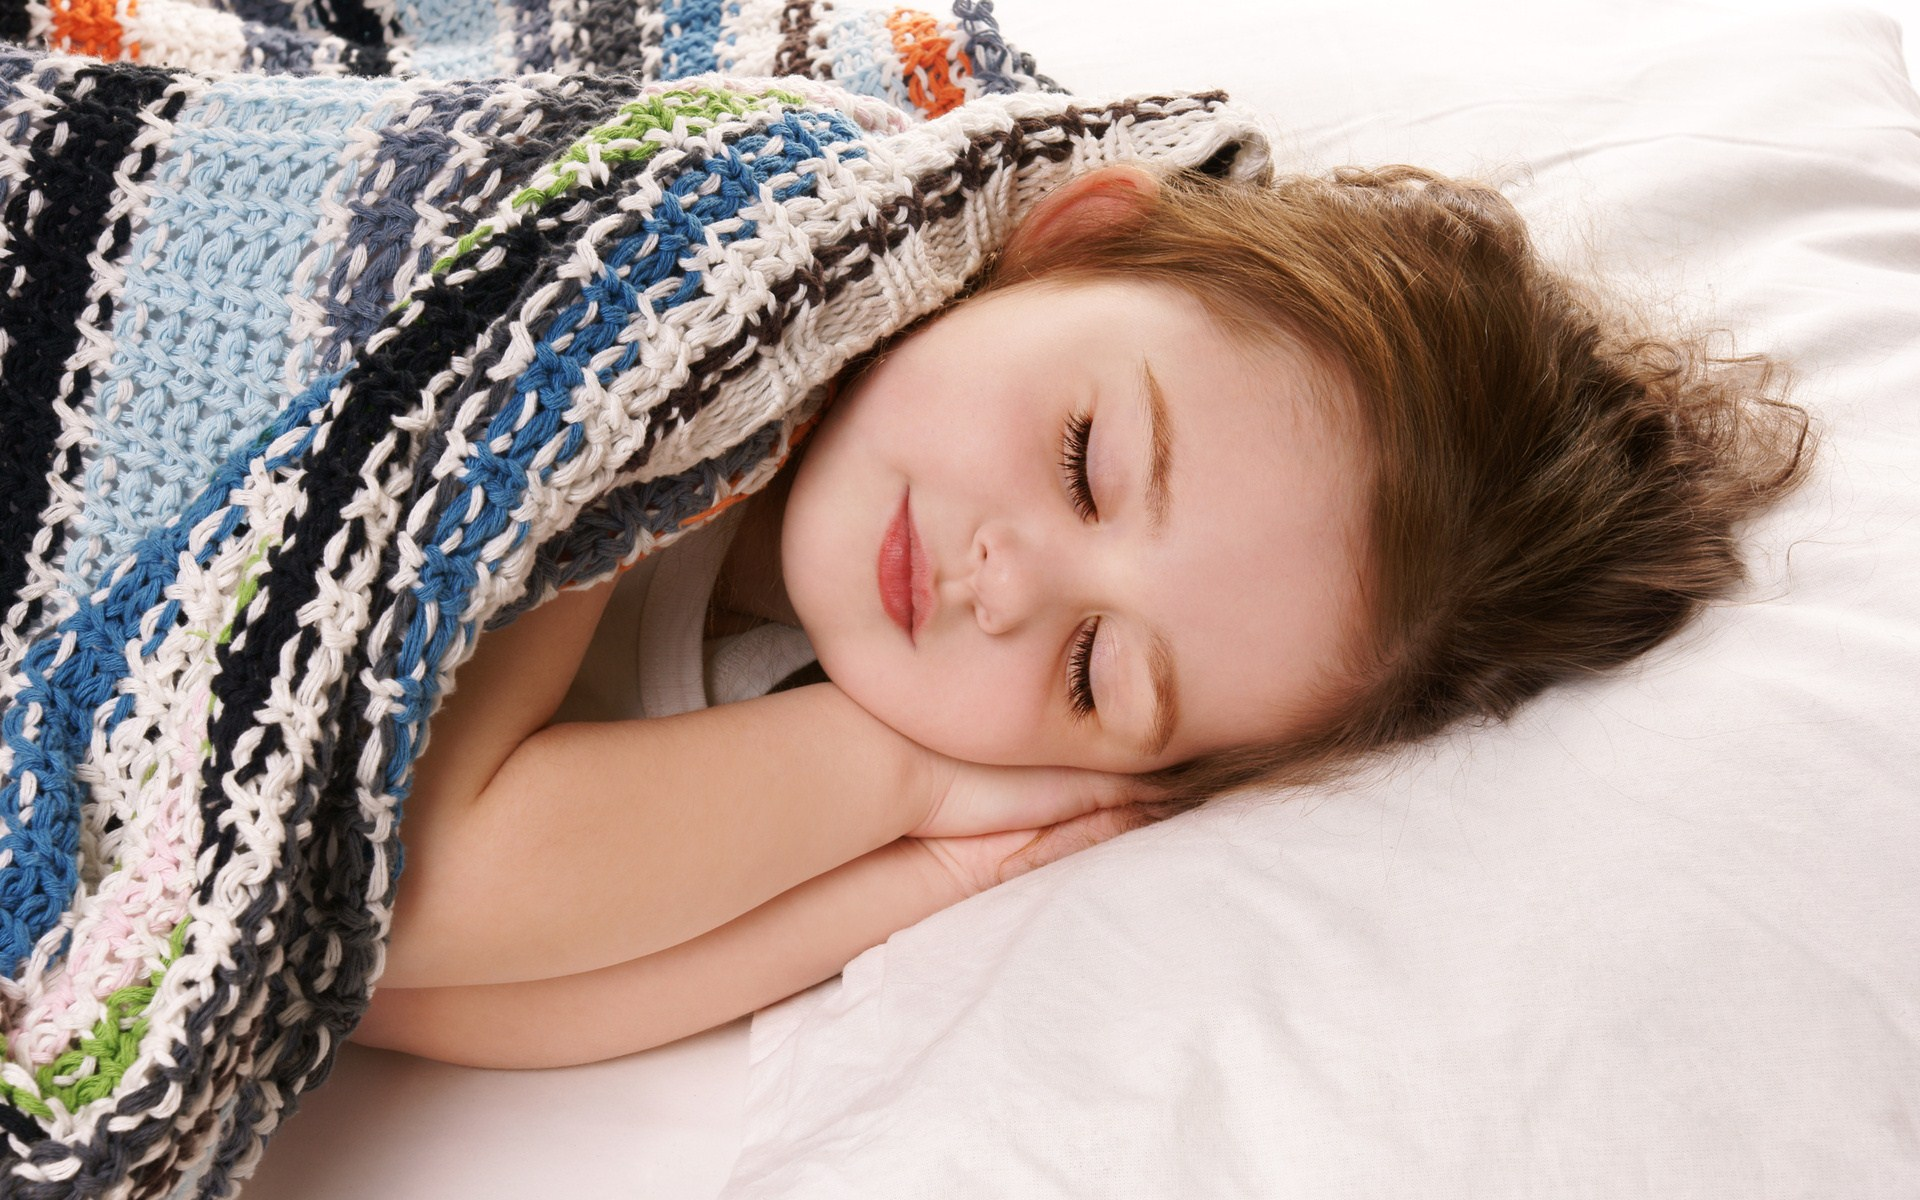 child-girl-sleep-wallpaper-1920x1200